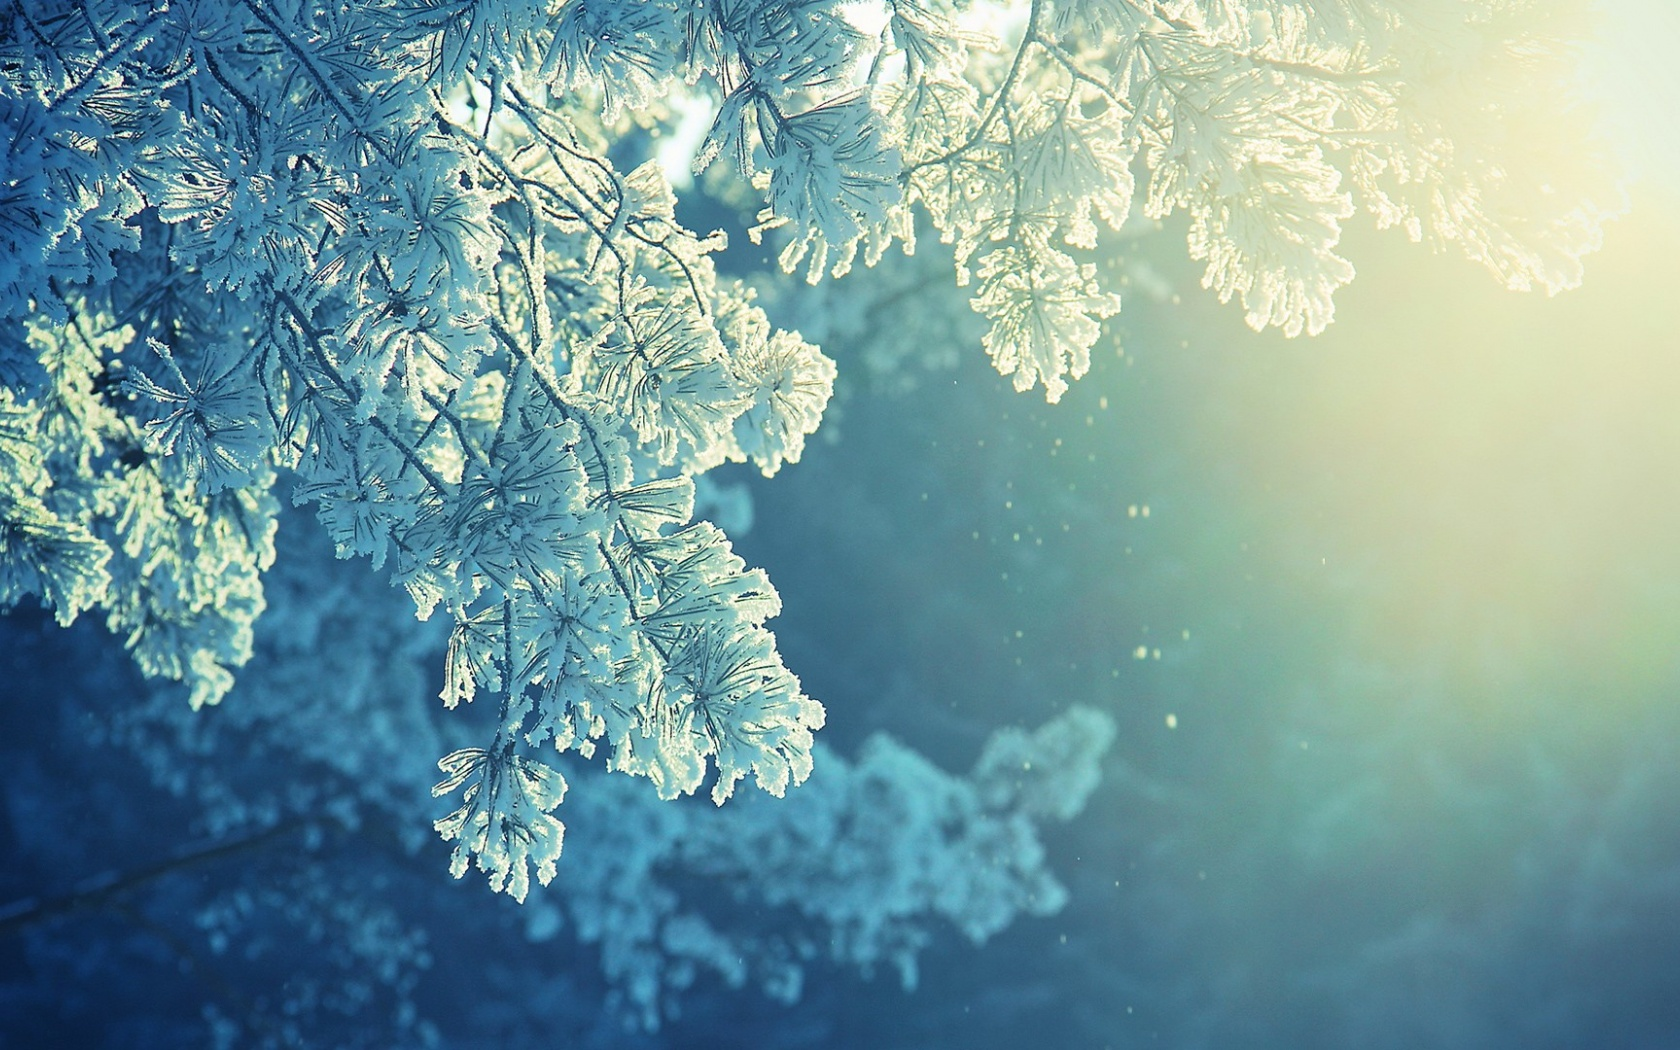 Download Winter Frost Branches Sunshine Wallpaper in 1680x1050 1680x1050